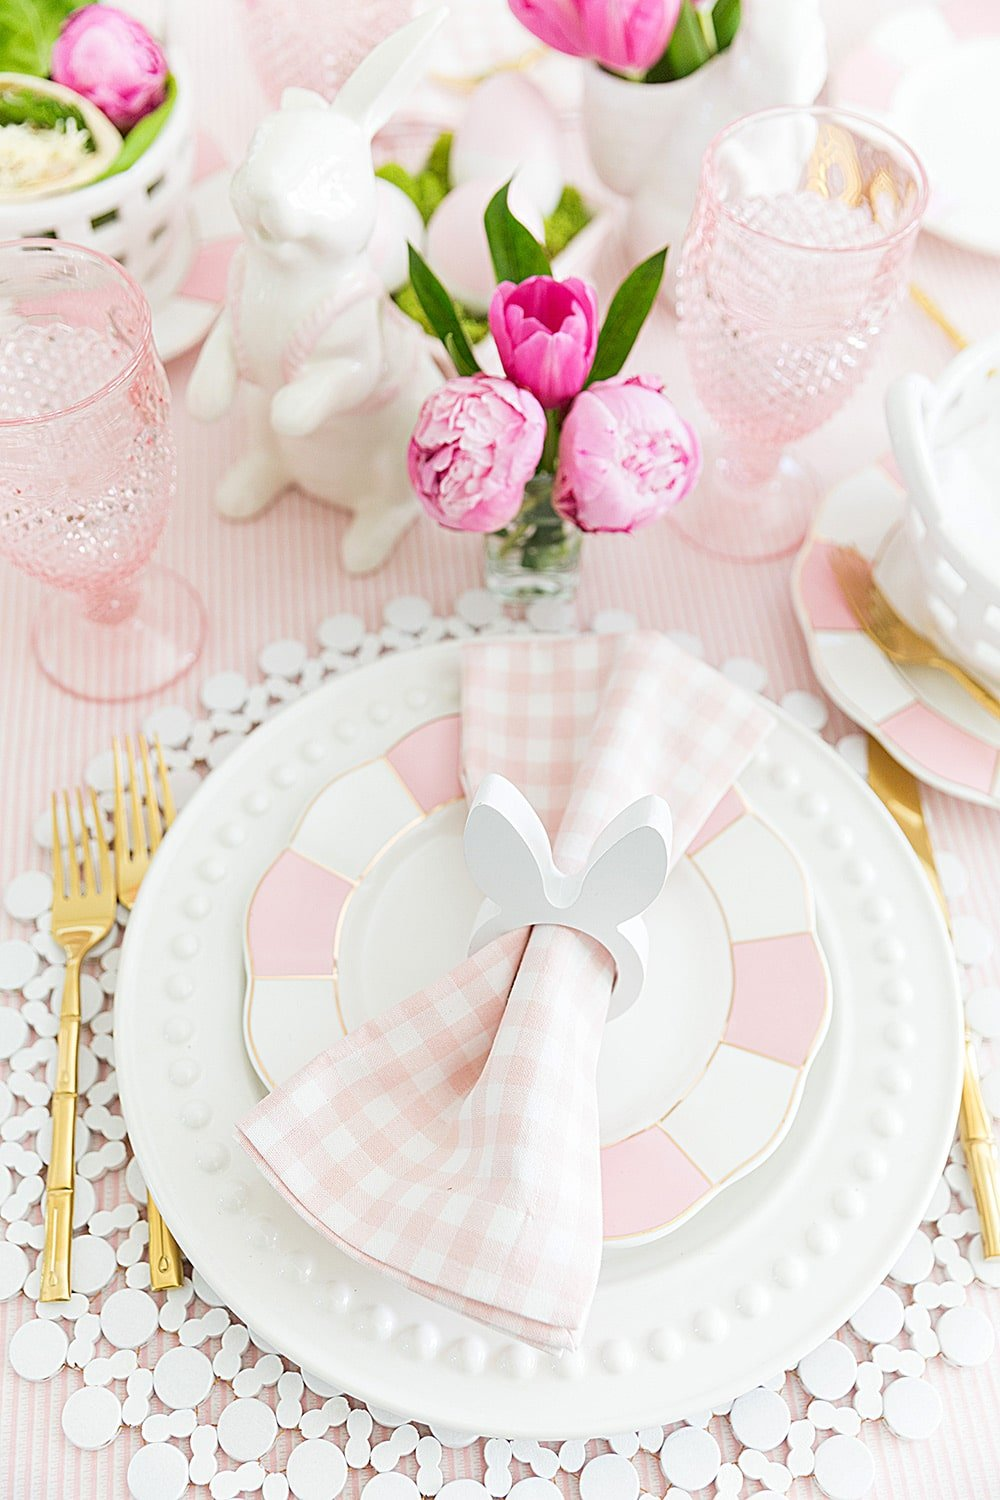 Gorgeous Easter Brunch Tablescape in Pink and White